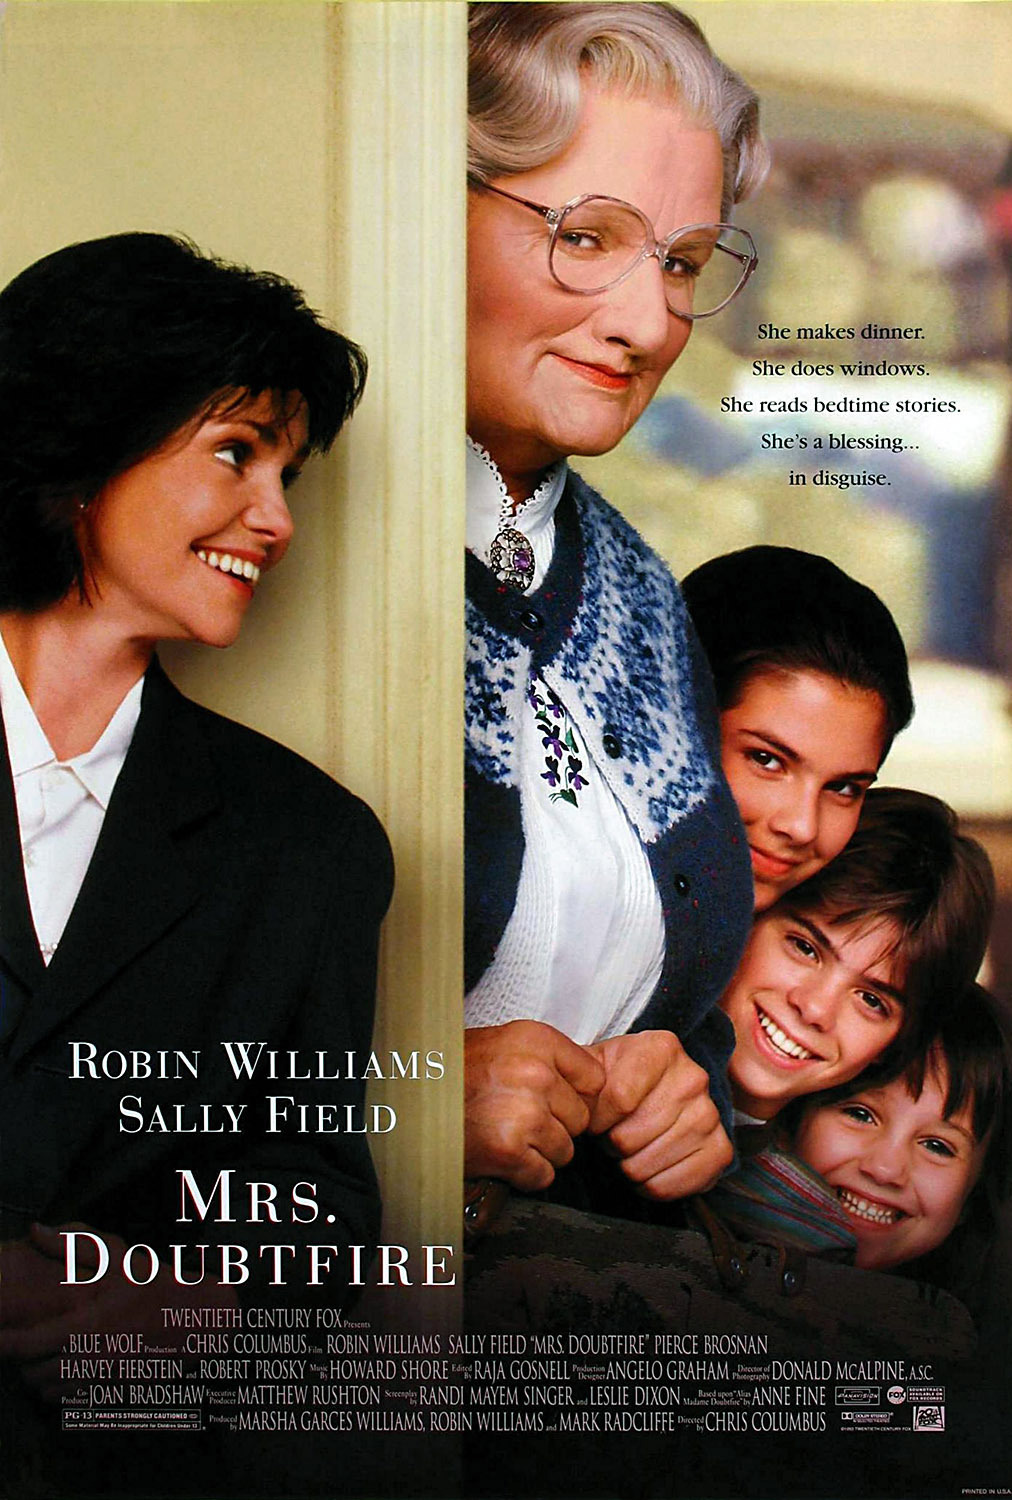 "Mrs. Doubtfire 2 Sequel Is ""In The Works"", Says Fox 2000 Studio"